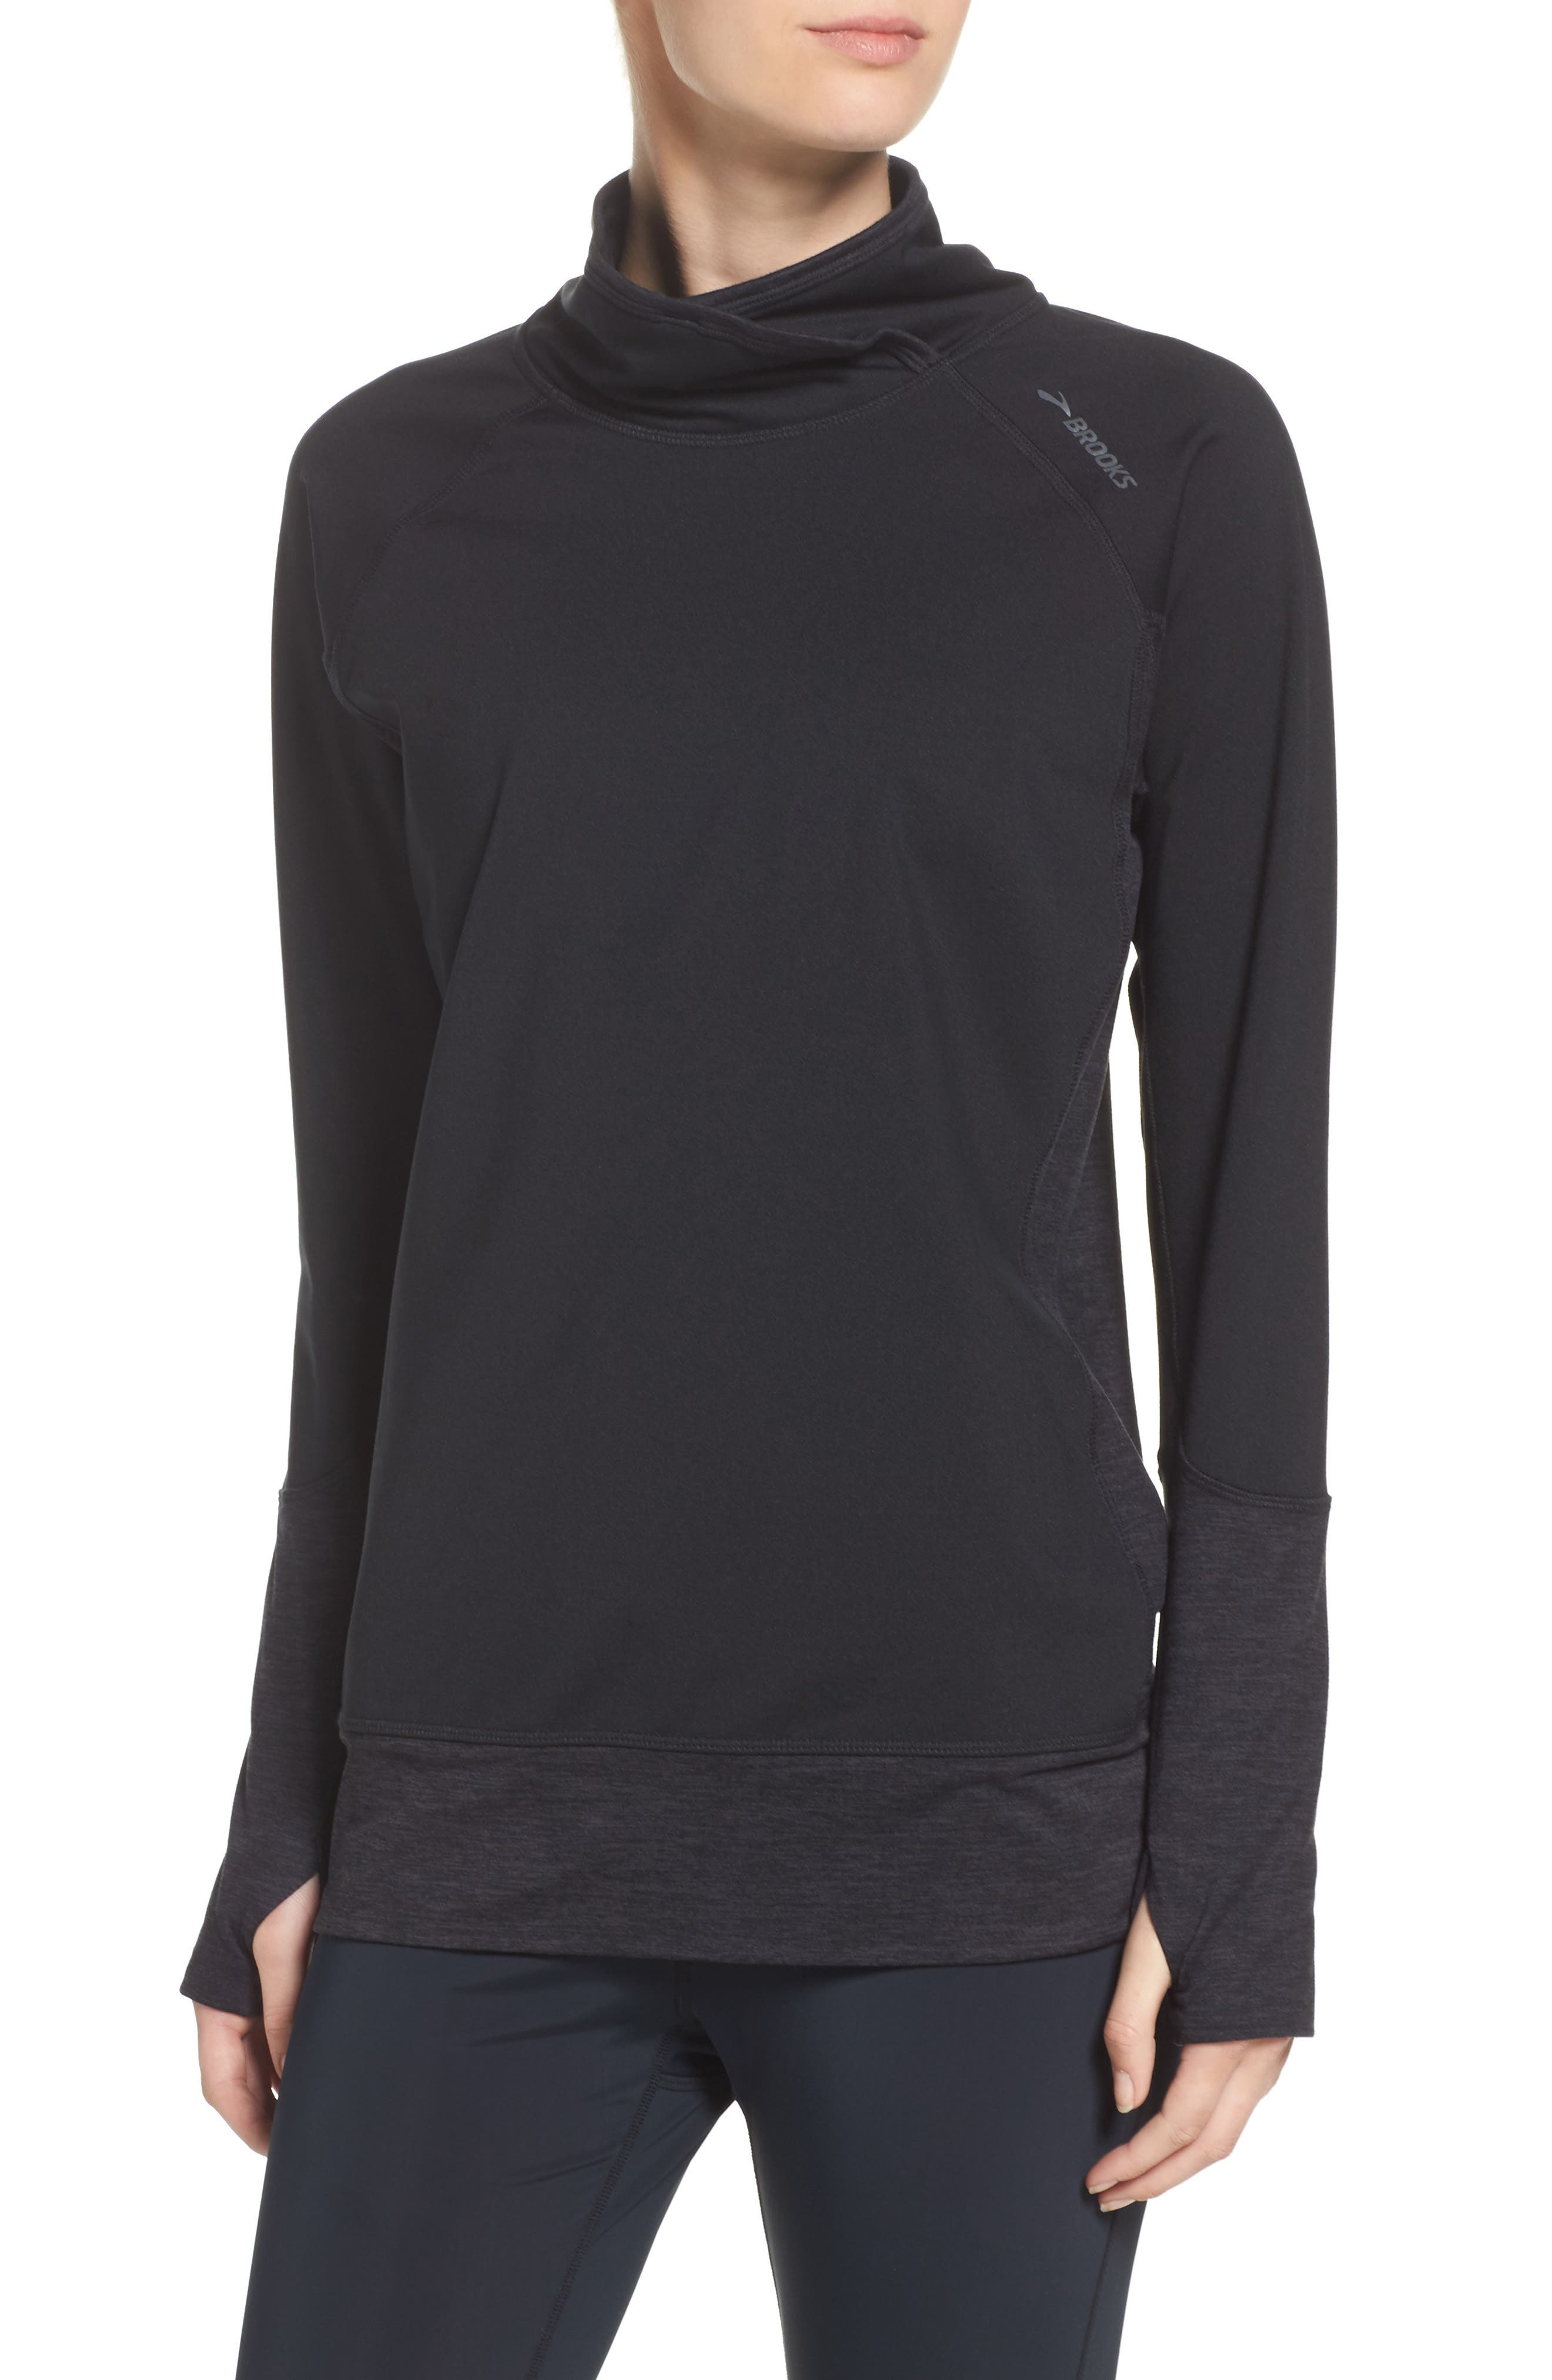 Performance Pullover,                             Main thumbnail 1, color,                             001